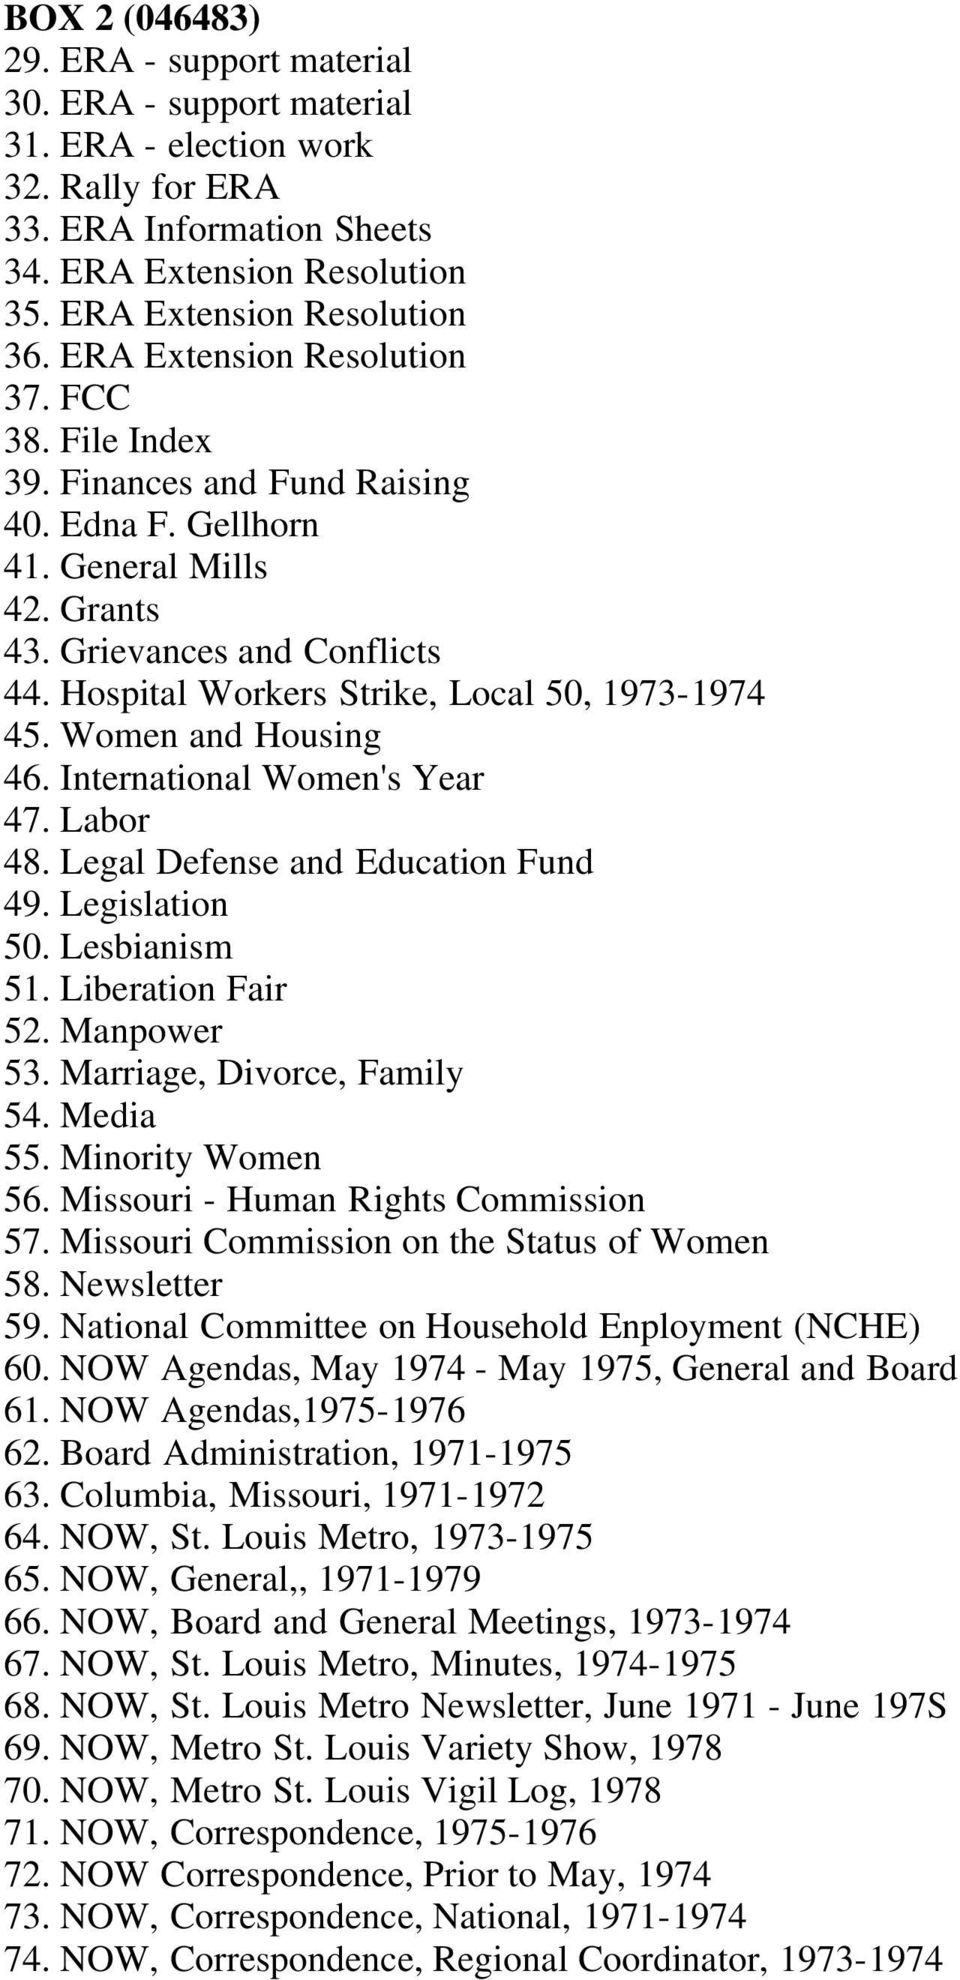 Hospital Workers Strike, Local 50, 1973-1974 45. Women and Housing 46. International Women's Year 47. Labor 48. Legal Defense and Education Fund 49. Legislation 50. Lesbianism 51. Liberation Fair 52.